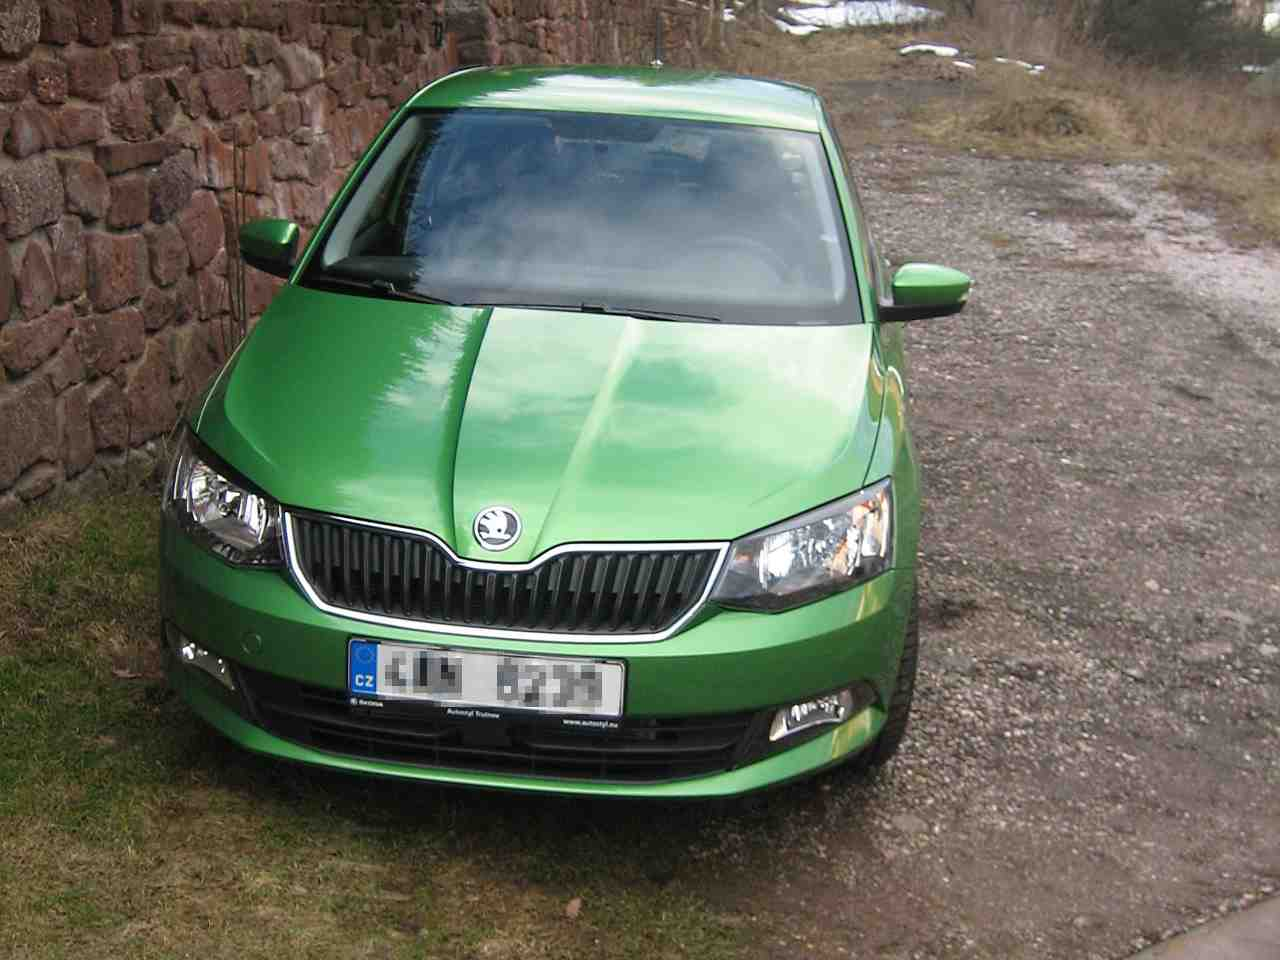 Škoda Fabia aka Mr. Froggy